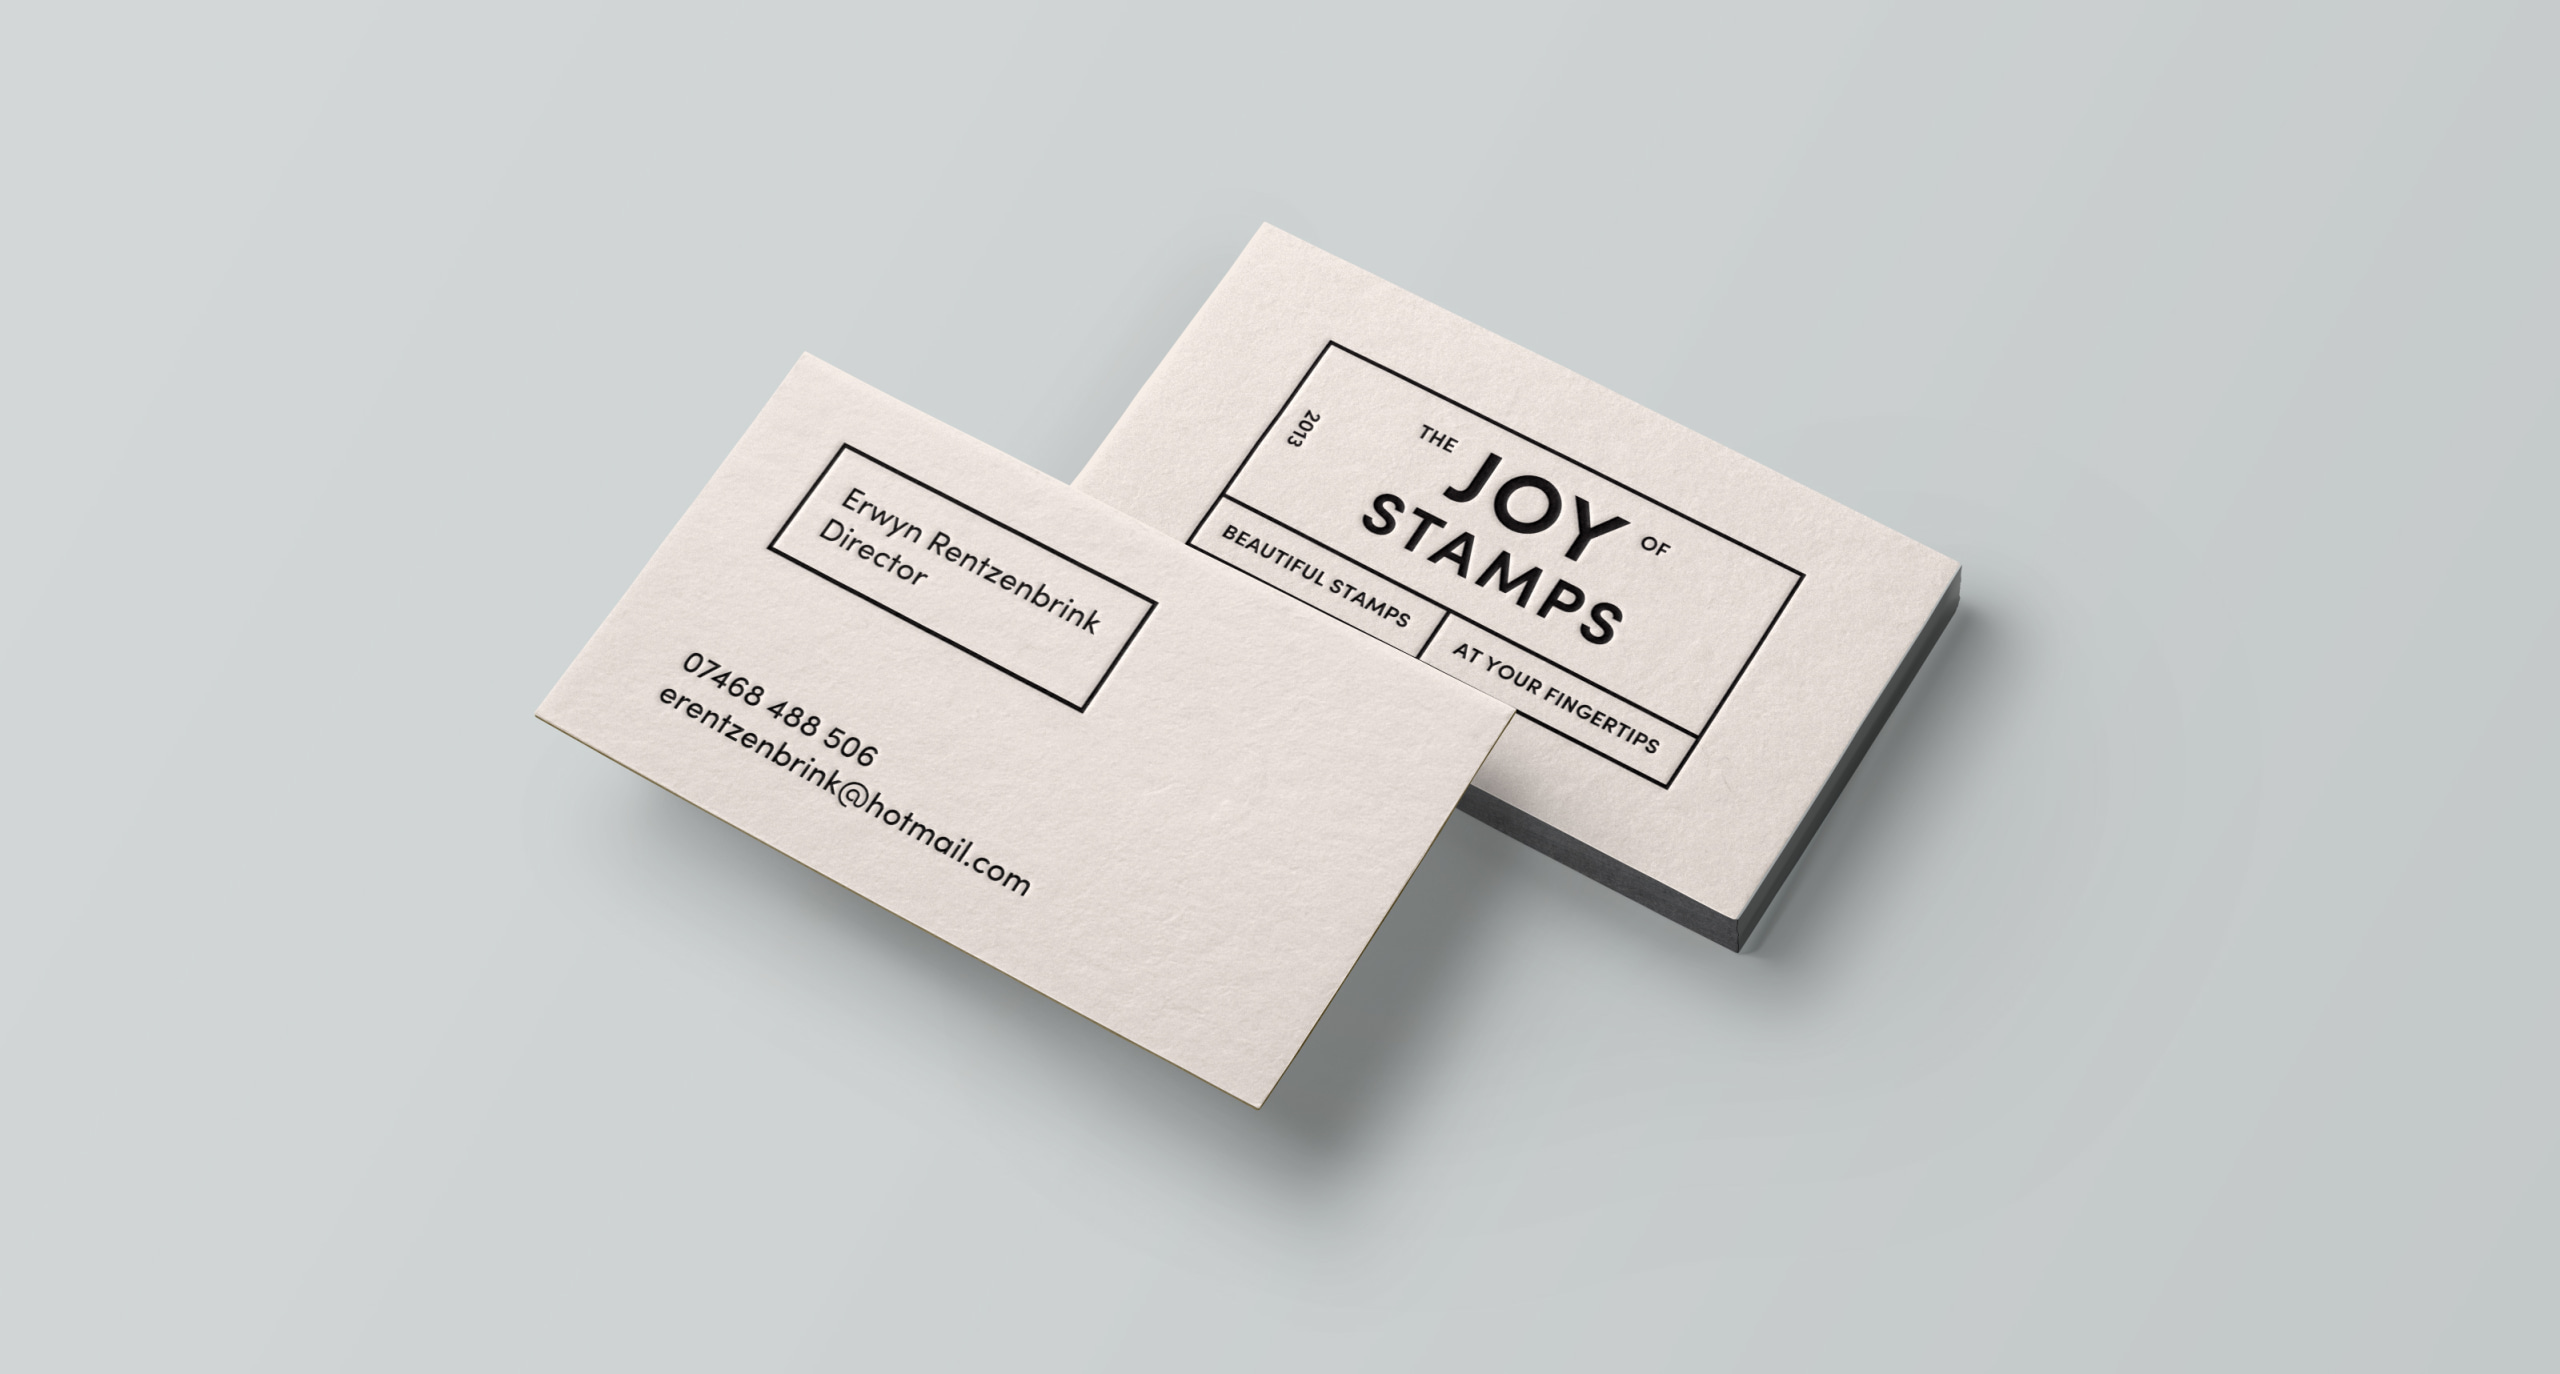 The Joy of Stamps buiness cards w